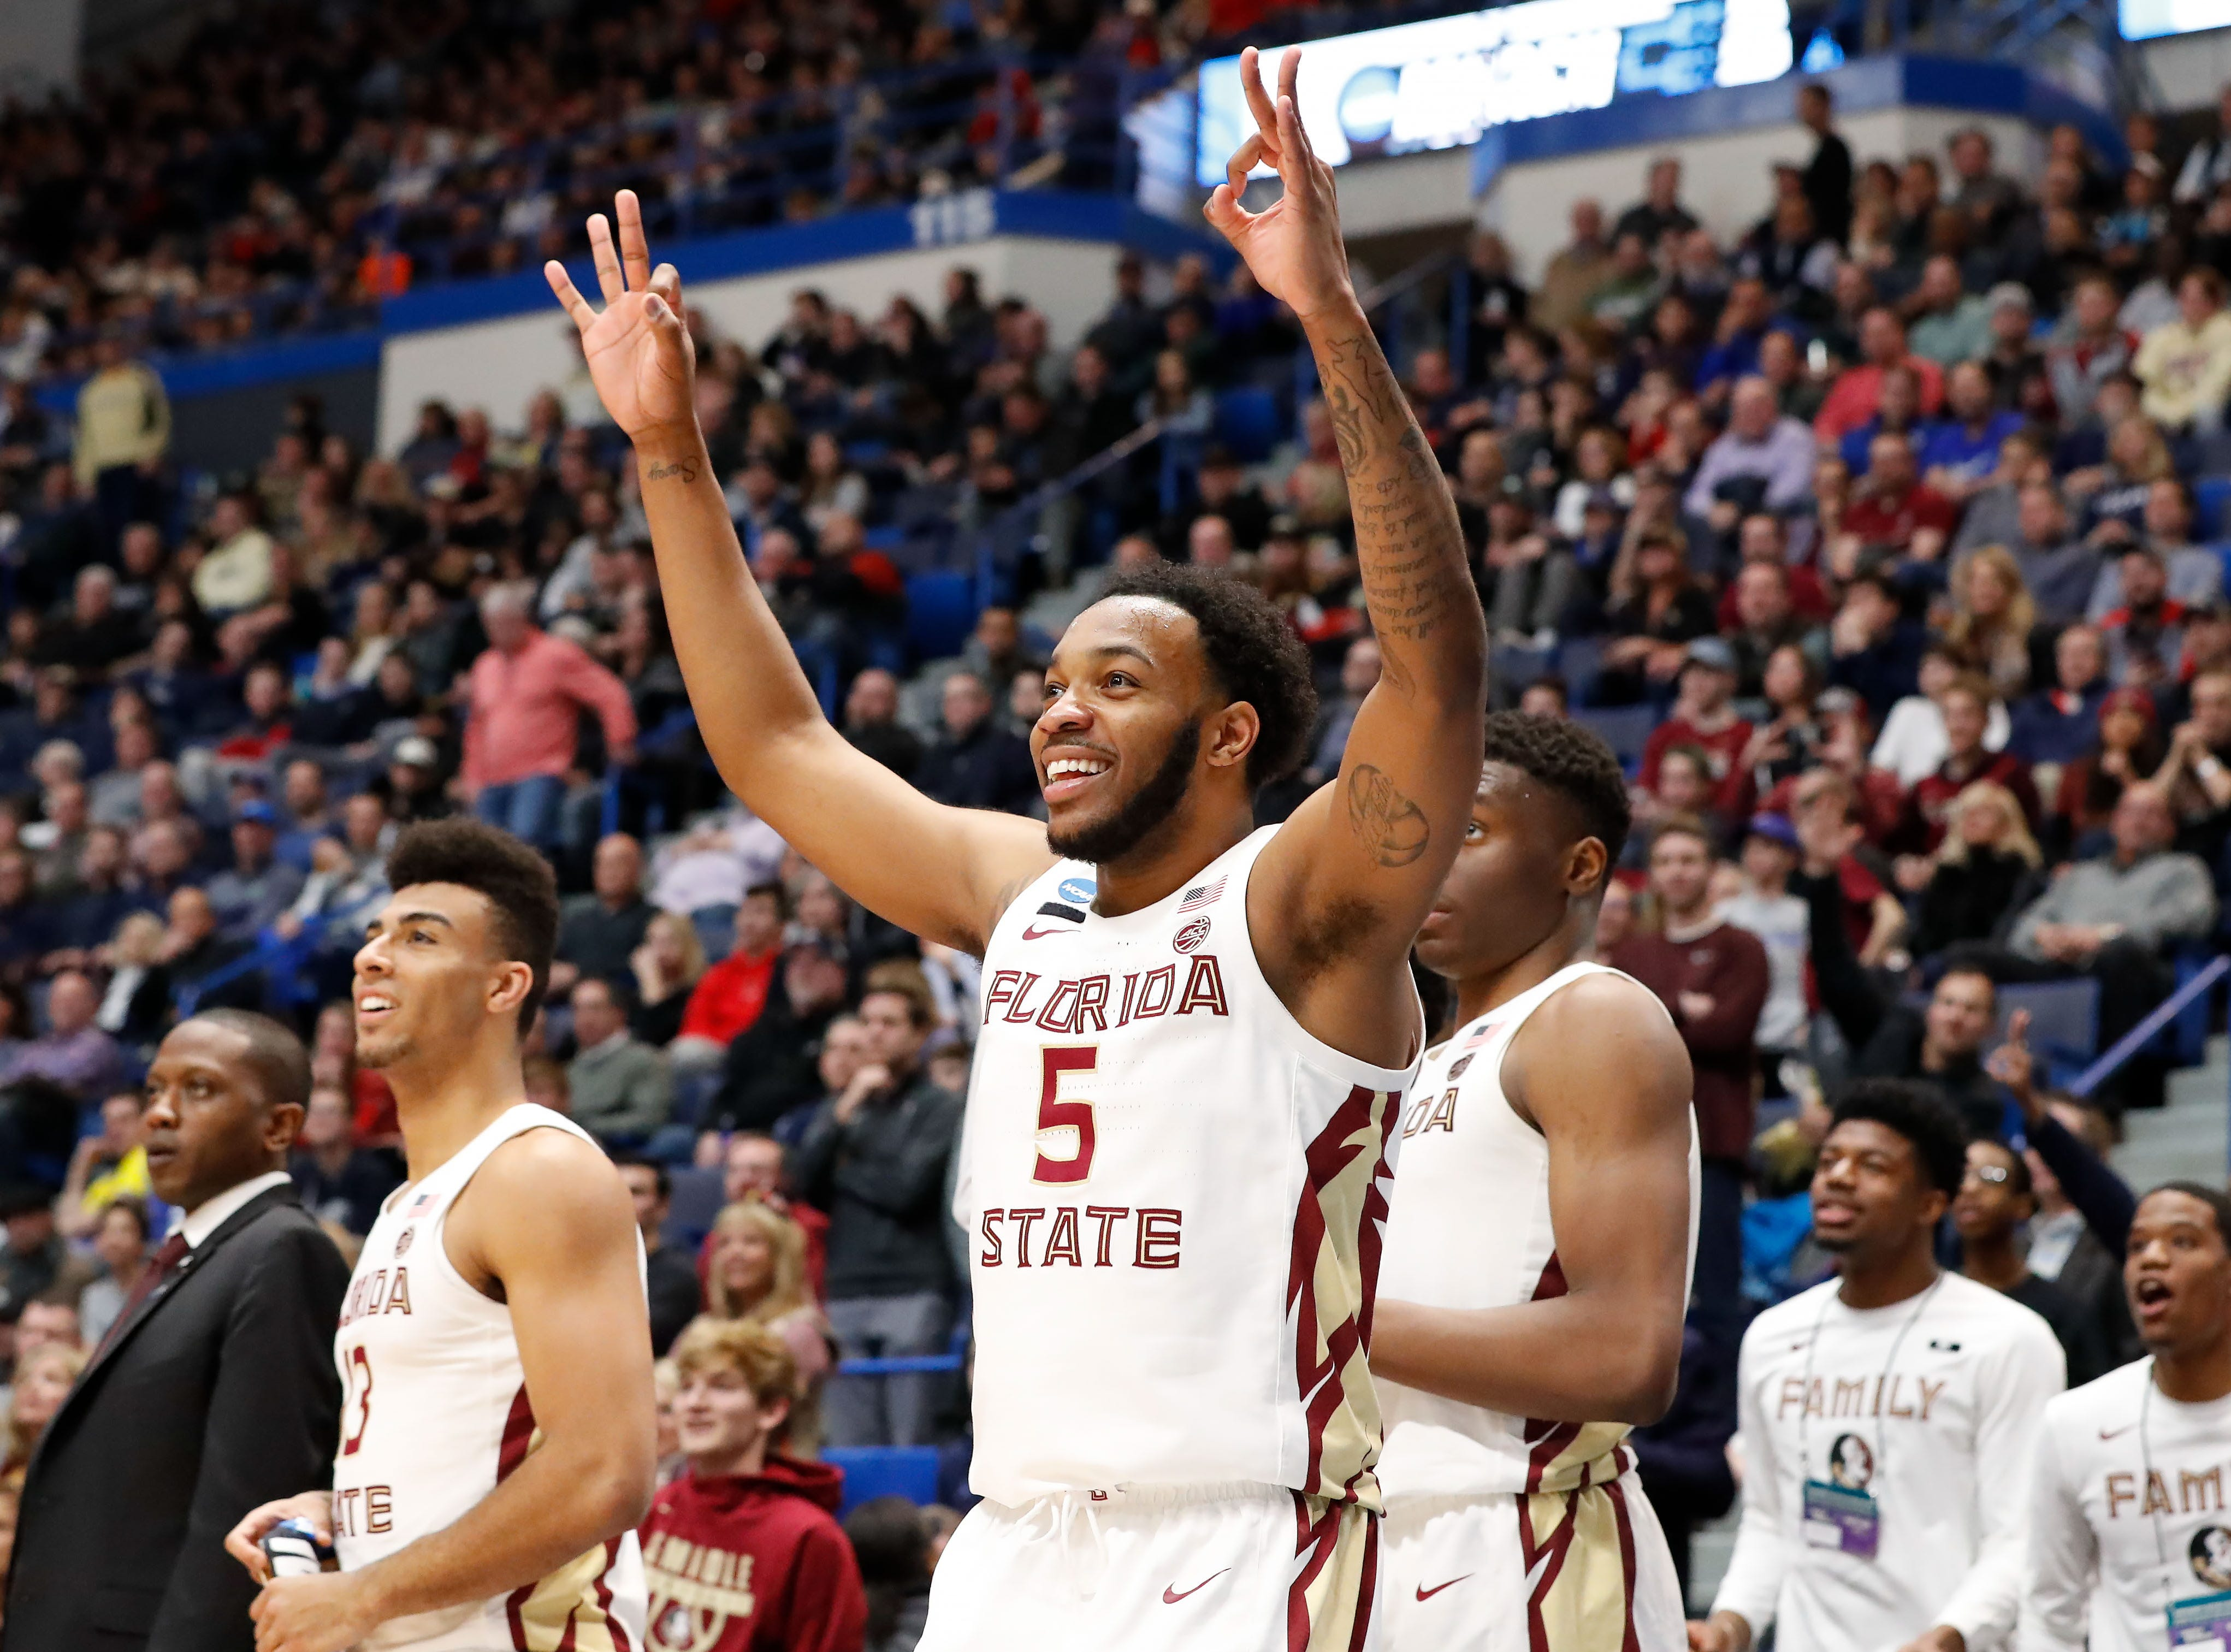 Mar 23, 2019; Hartford, CT, USA; Florida State Seminoles guard PJ Savoy (5) reacts after a score against the Murray State Racers during the second half of a game in the second round of the 2019 NCAA Tournament at XL Center. Mandatory Credit: David Butler II-USA TODAY Sports